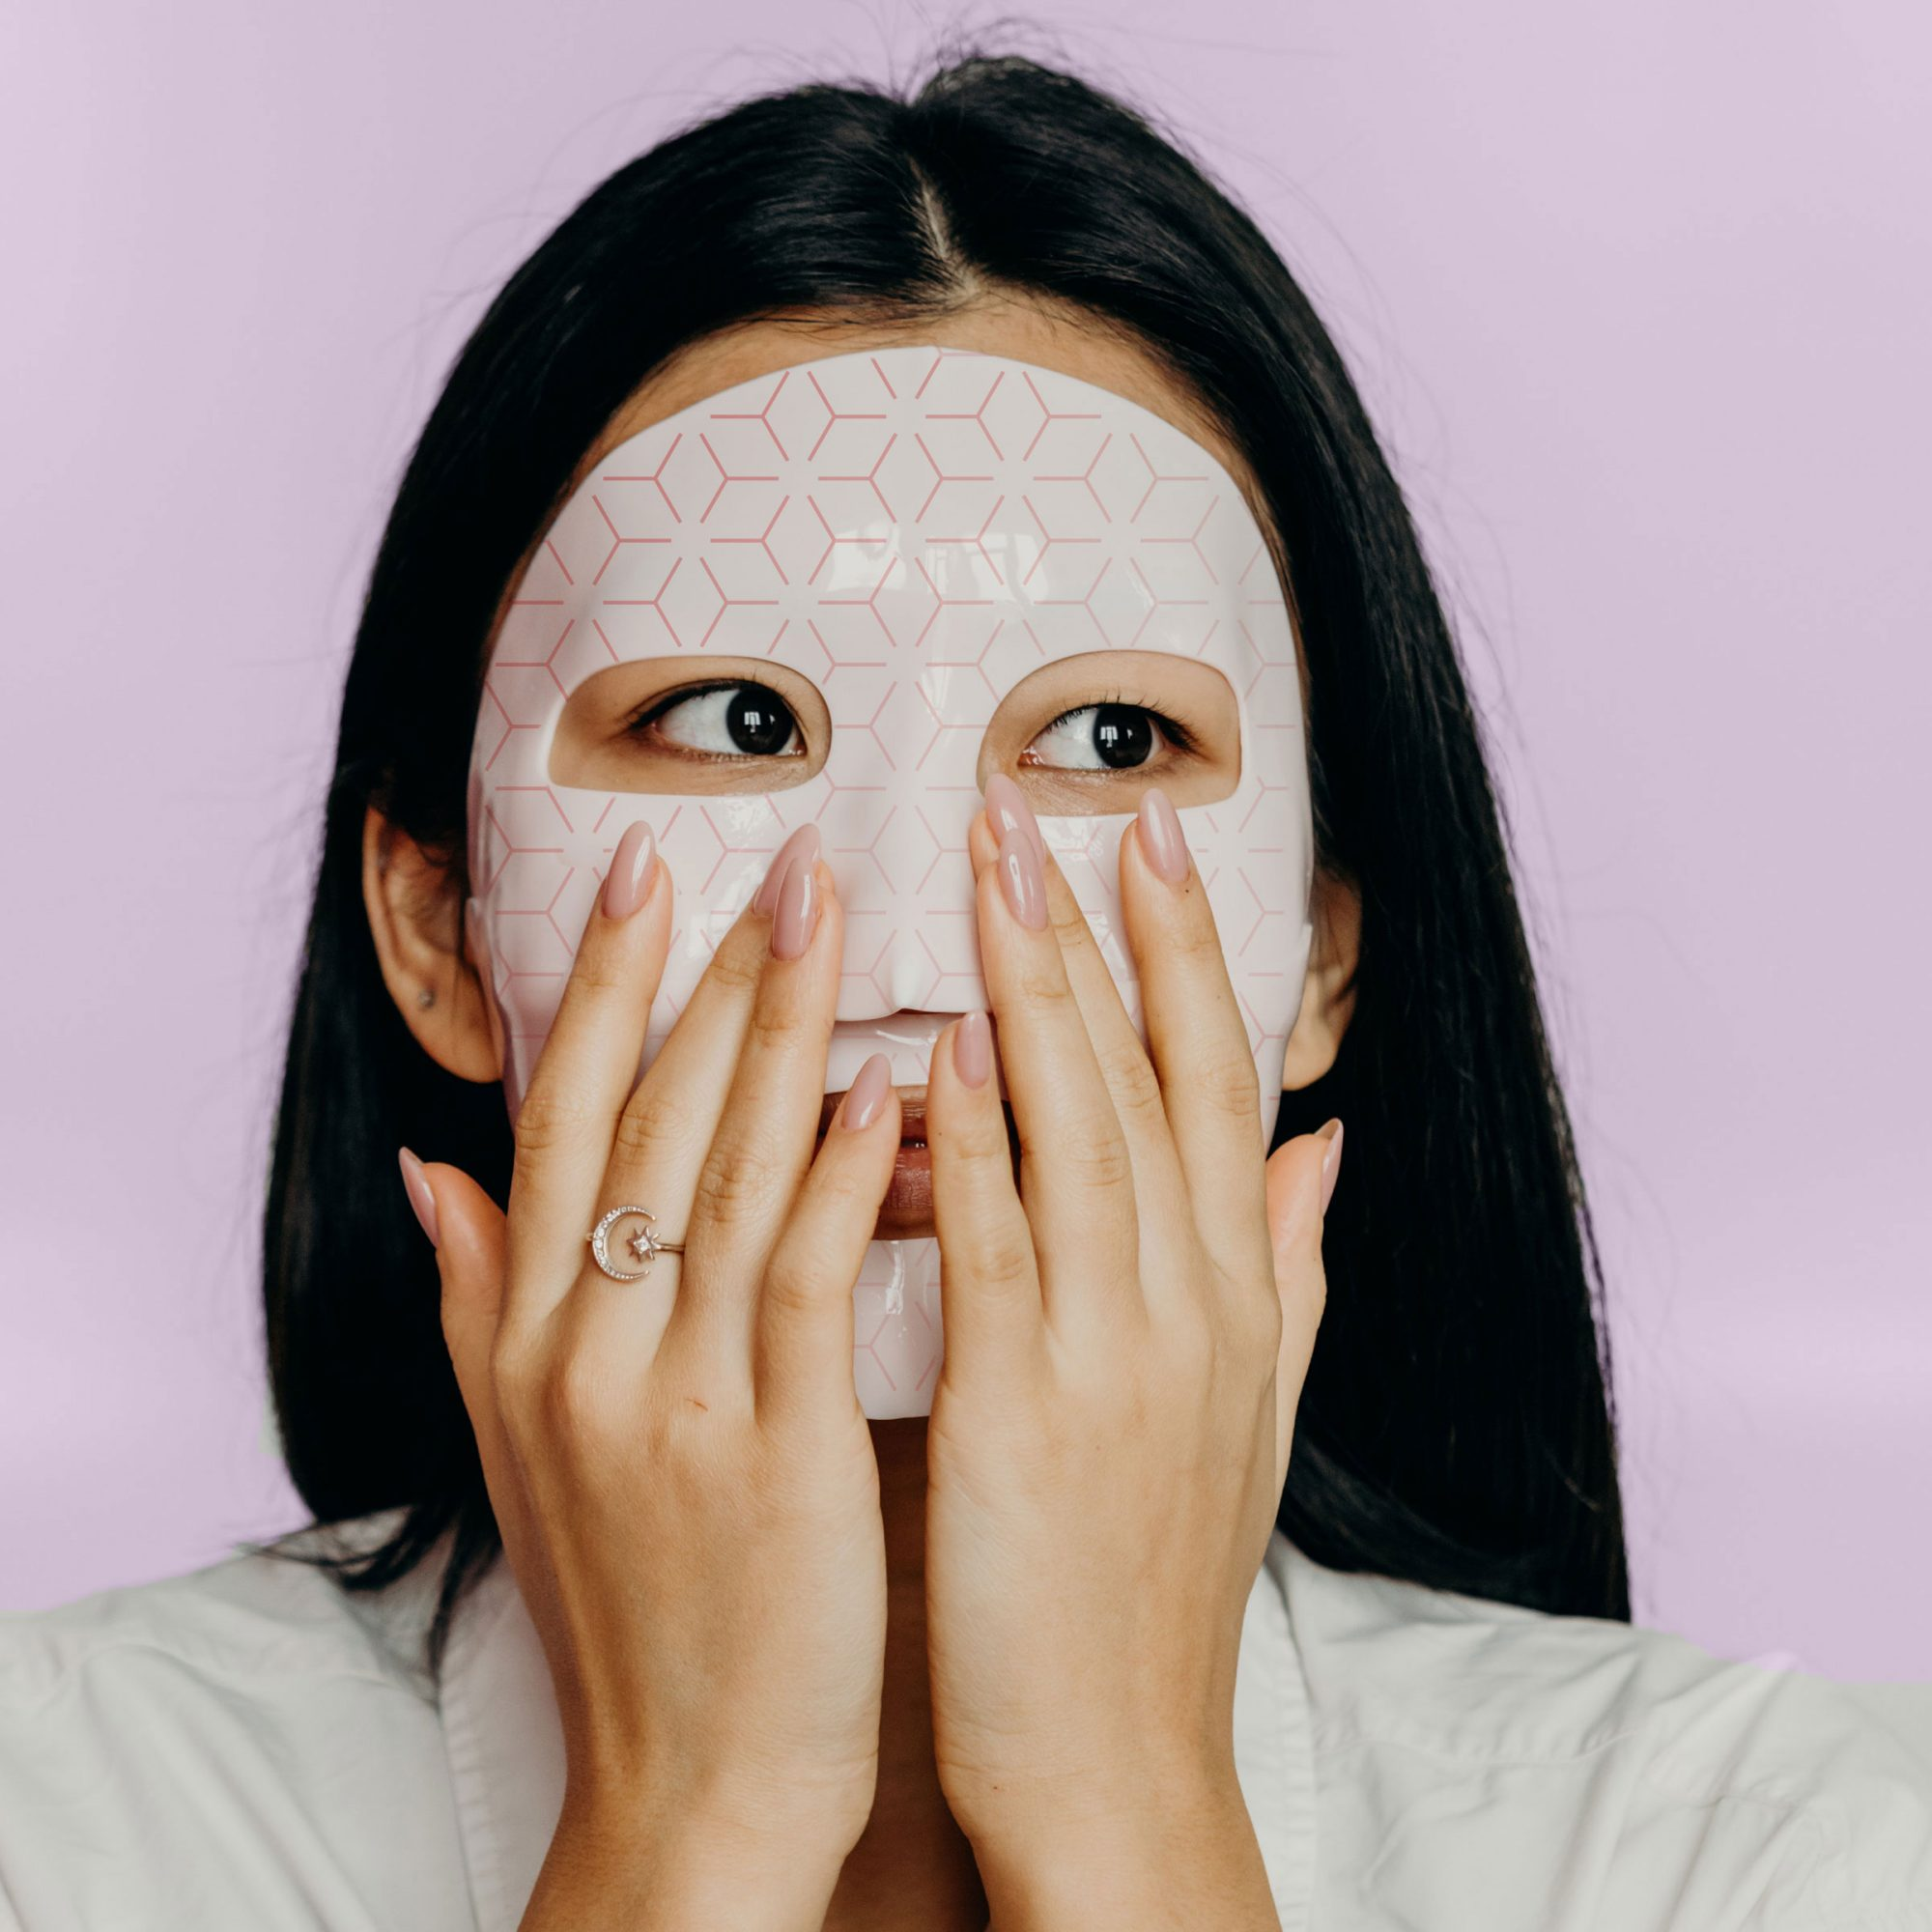 These $29 Sheet Masks Are an Inexpensive Way to Try Anti-Aging Light Therapy